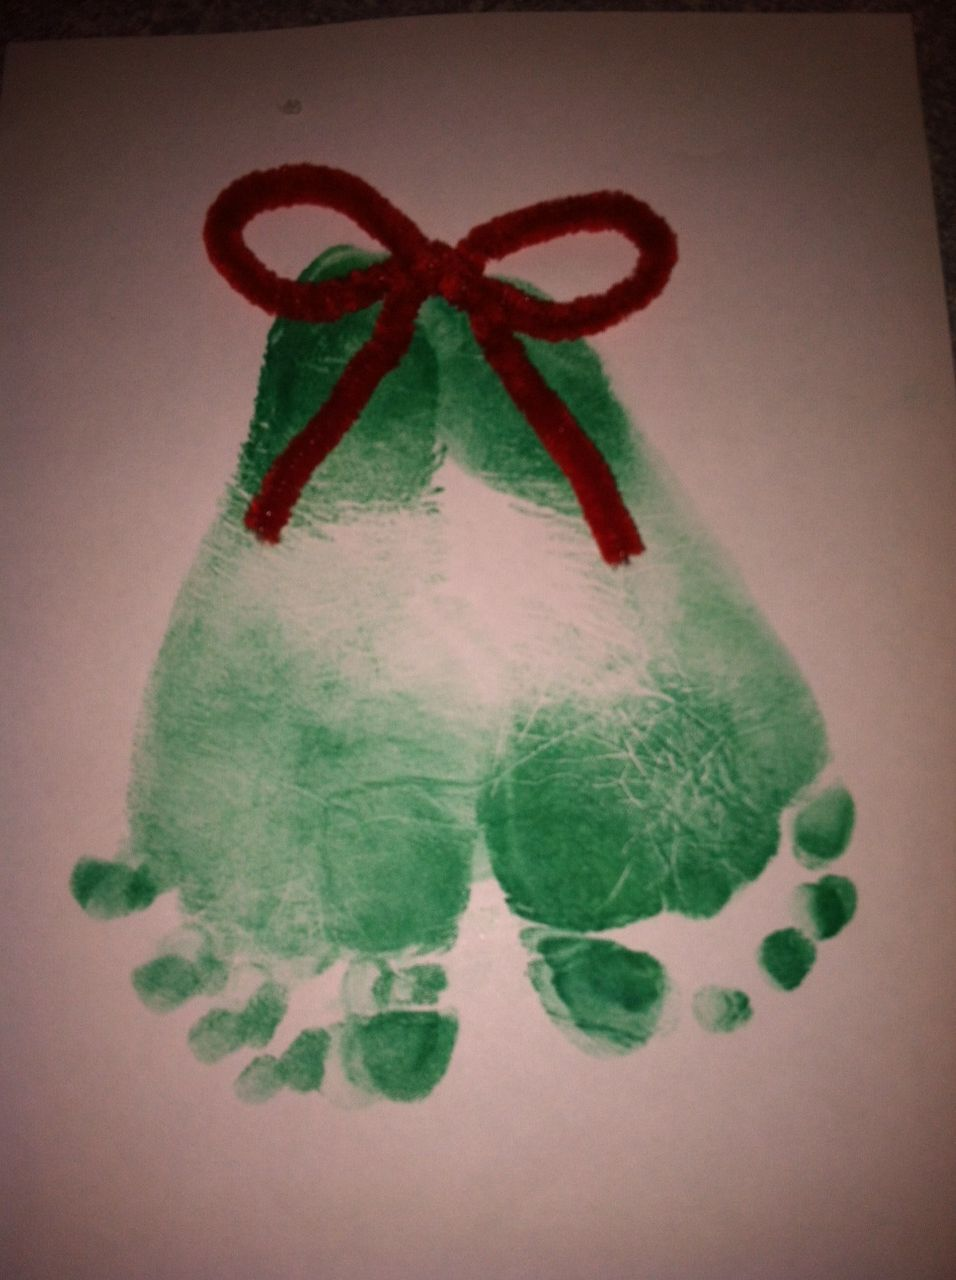 Footprint mistletoes #mistletoesfootprintcraft Footprint mistletoes #mistletoesfootprintcraft